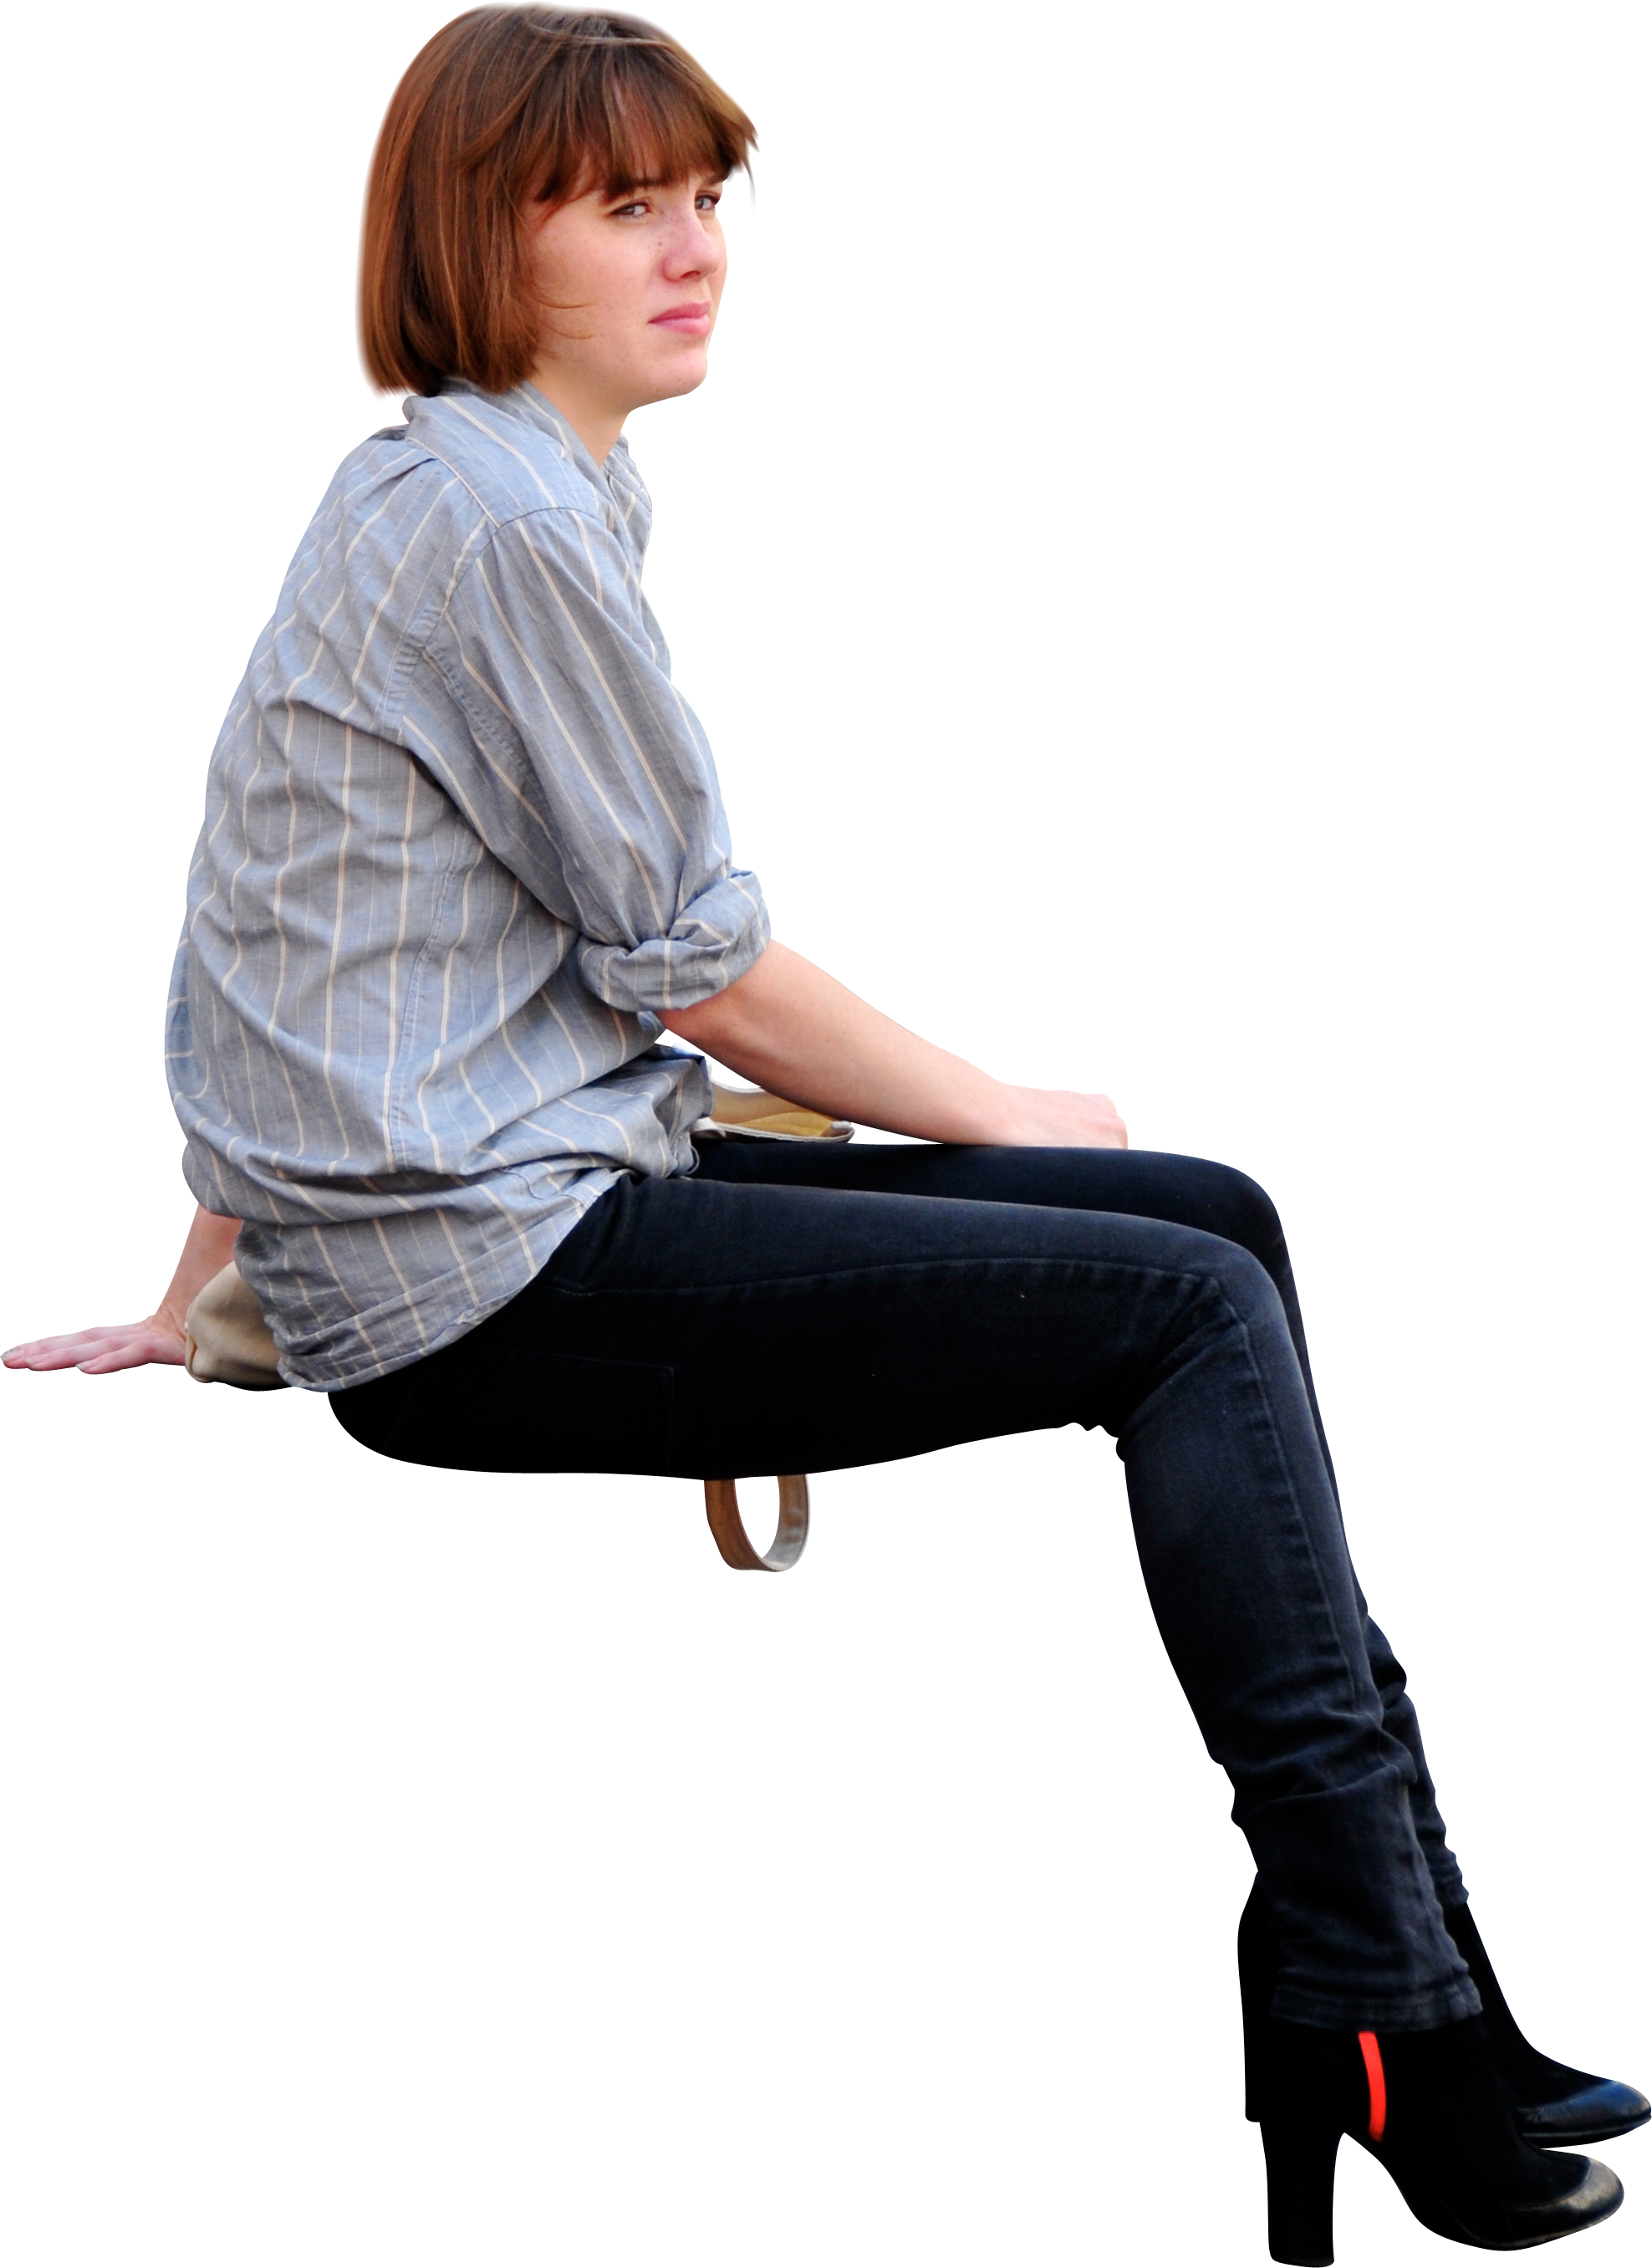 Person sitting on bench png. Girl down viewed from